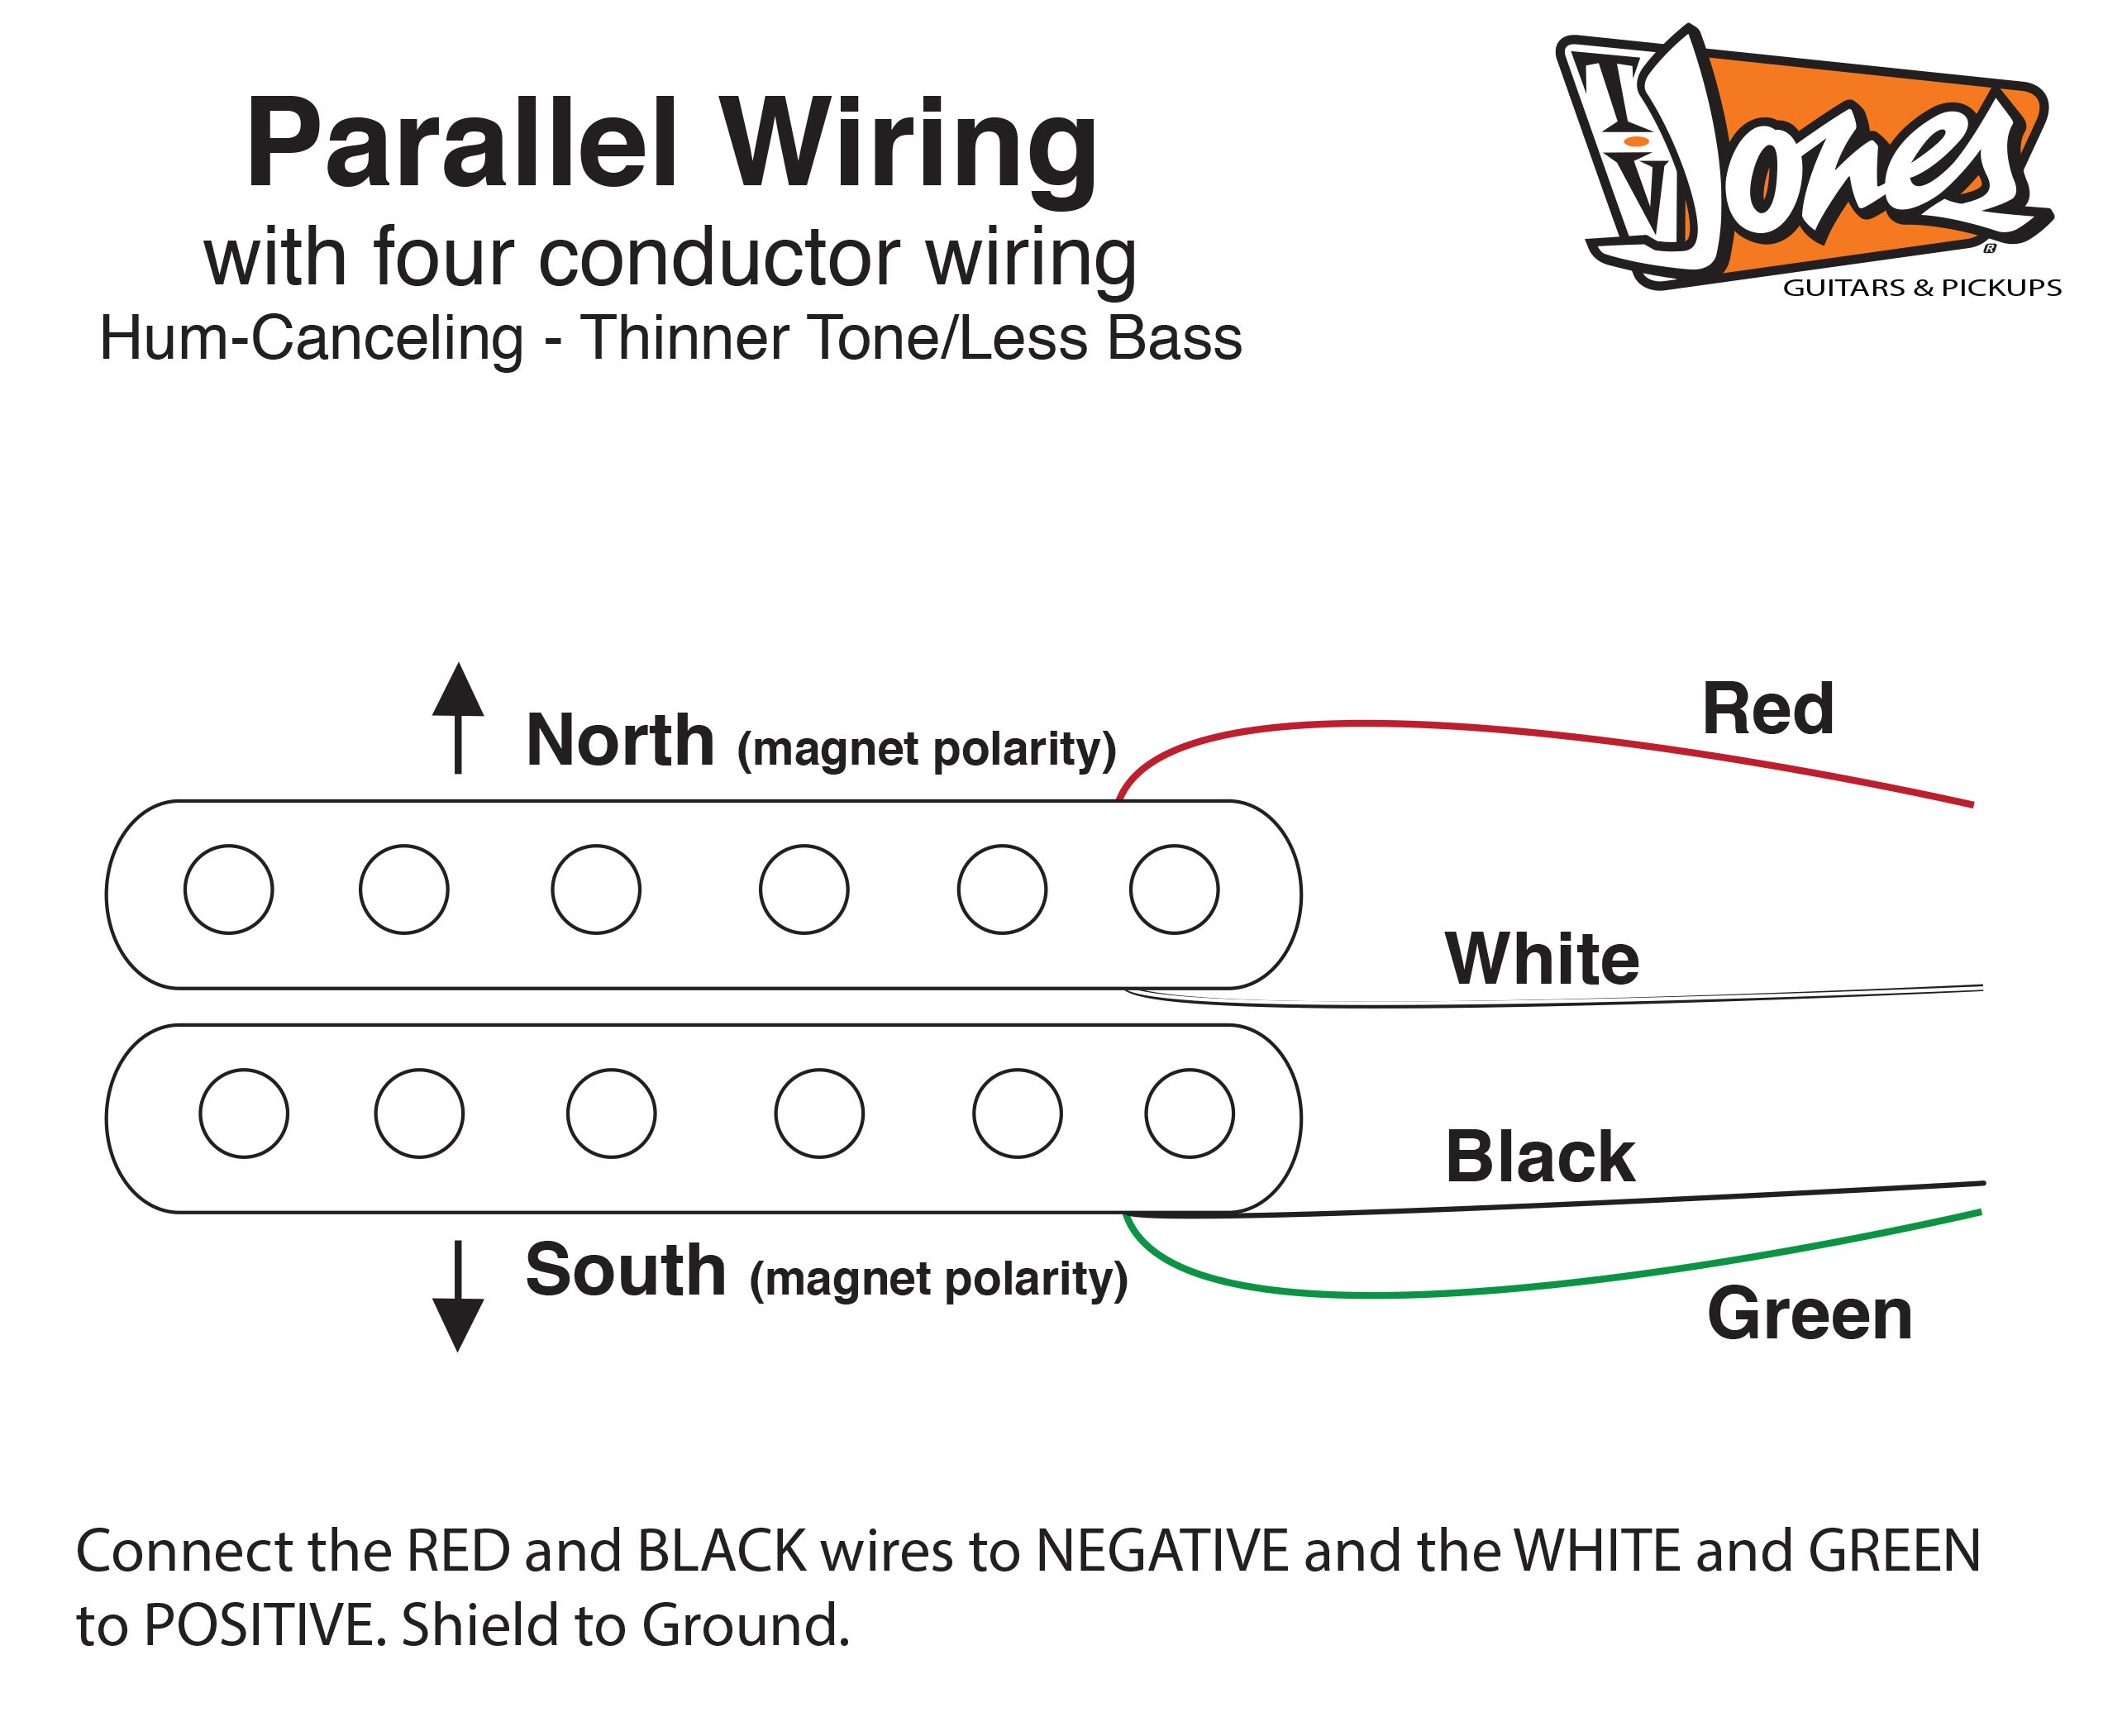 Tv Jones Product Dimensions Gretsch 5120 Wiring Diagram Pickup